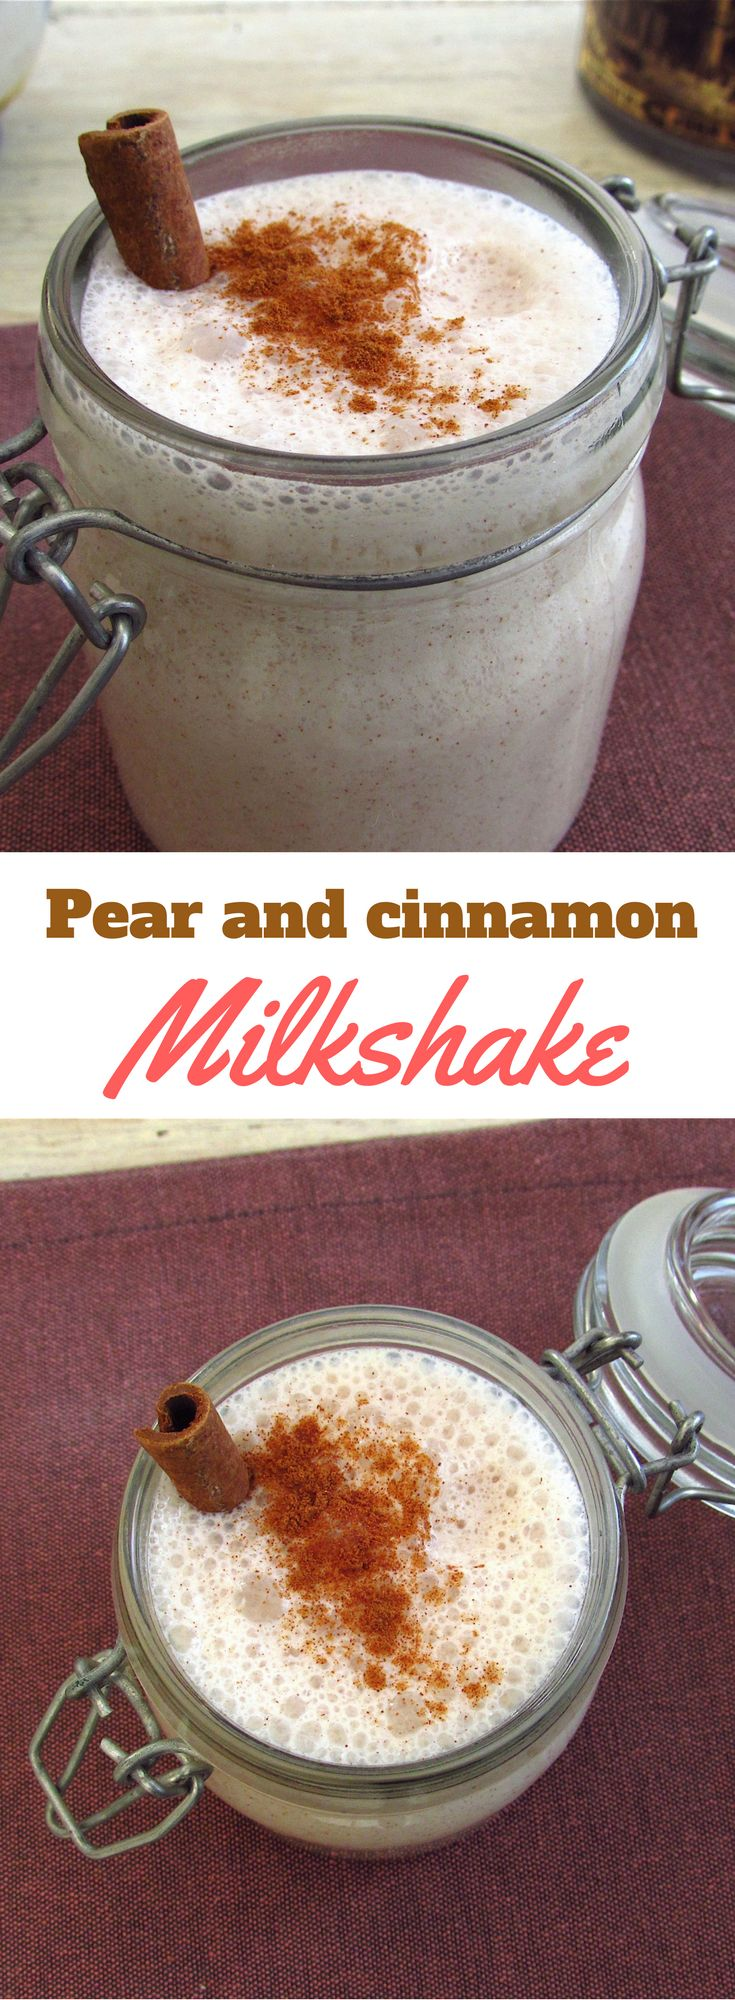 Pear and cinnamon milkshake   Food From Portugal. On a hot Summer afternoon a refreshing drink is the best option. Here is the perfect combination of two flavors, pear and cinnamon milkshake is refreshing, creamy and very easy to prepare. #recipe #cinnamon #milkshake #pear